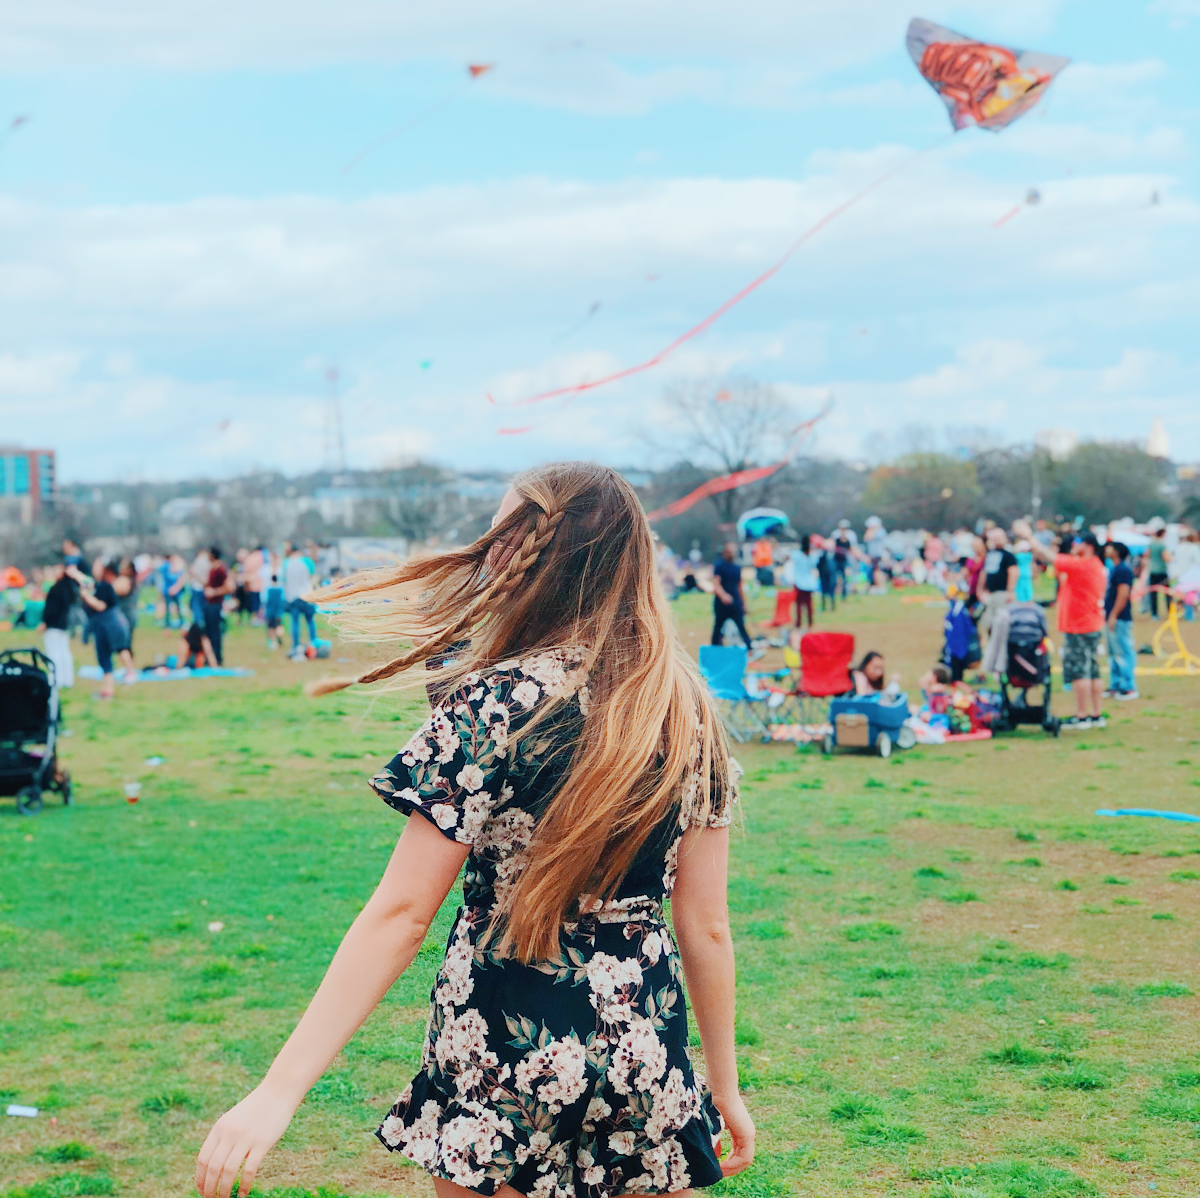 Madison Hager visits Zilker Park for the annual ABC kite festival and enjoys the great outdoors, the weather, the dogs and the families all present during the fun activities